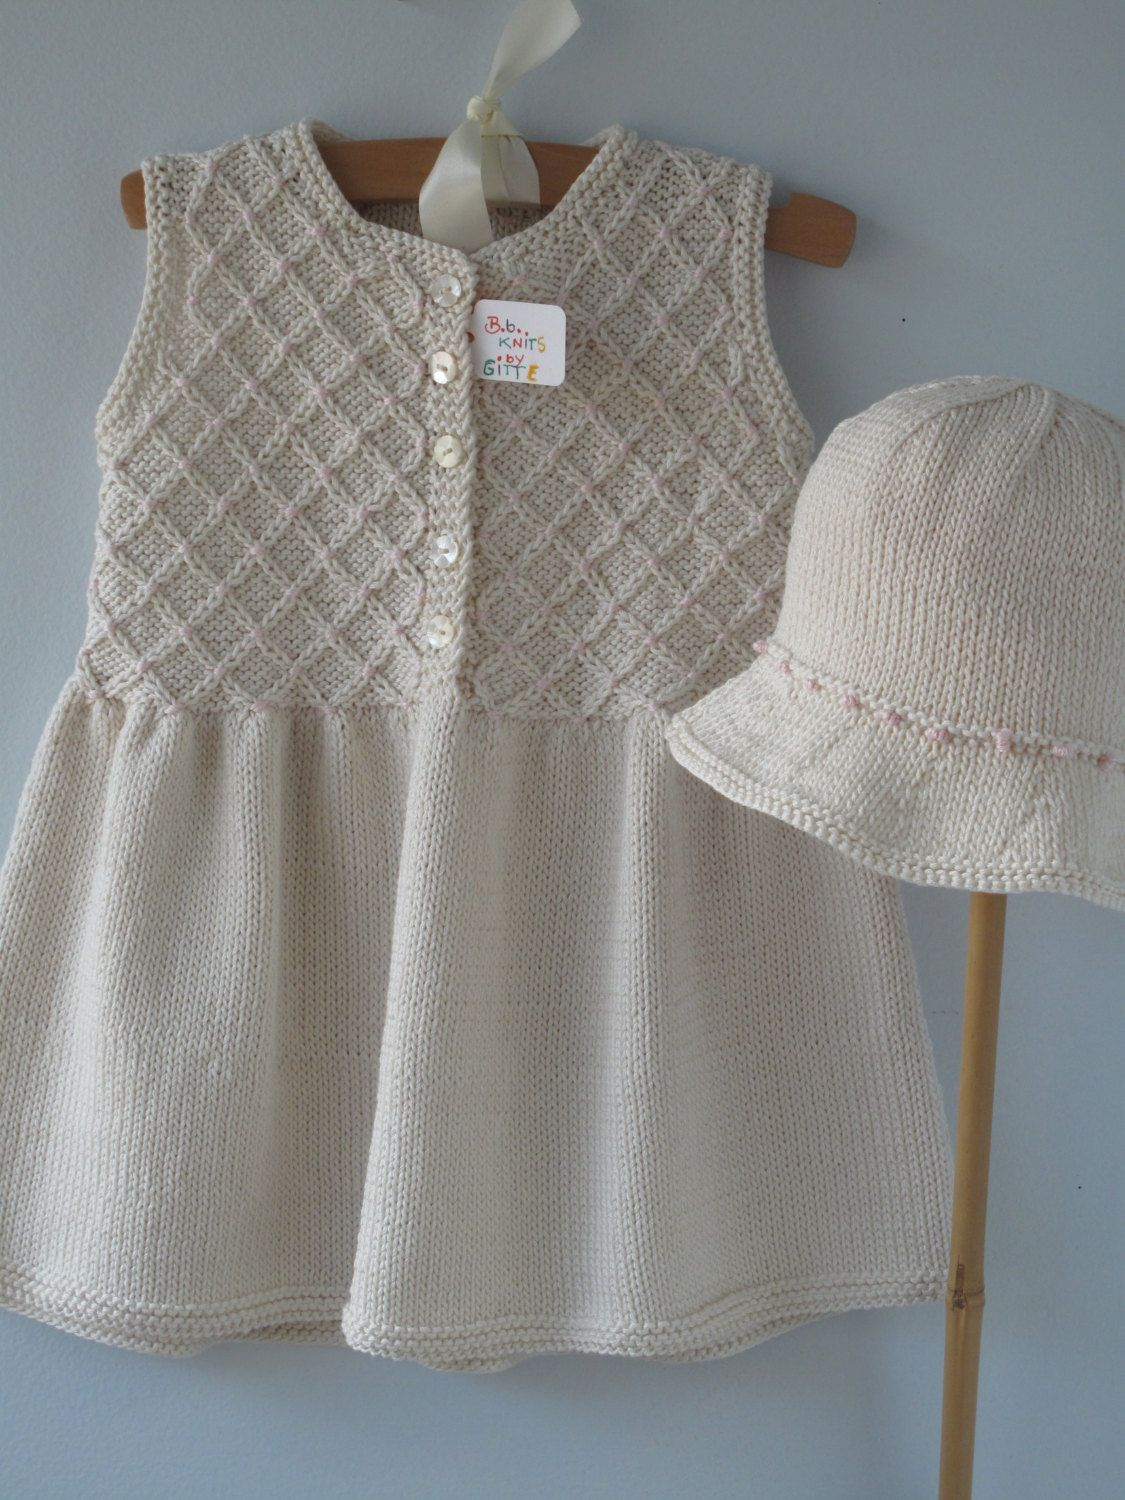 c50ee4fc868e Baby Clothes Handmade Hand Knit Smocked Dress by BbKnitsbyGitte ...